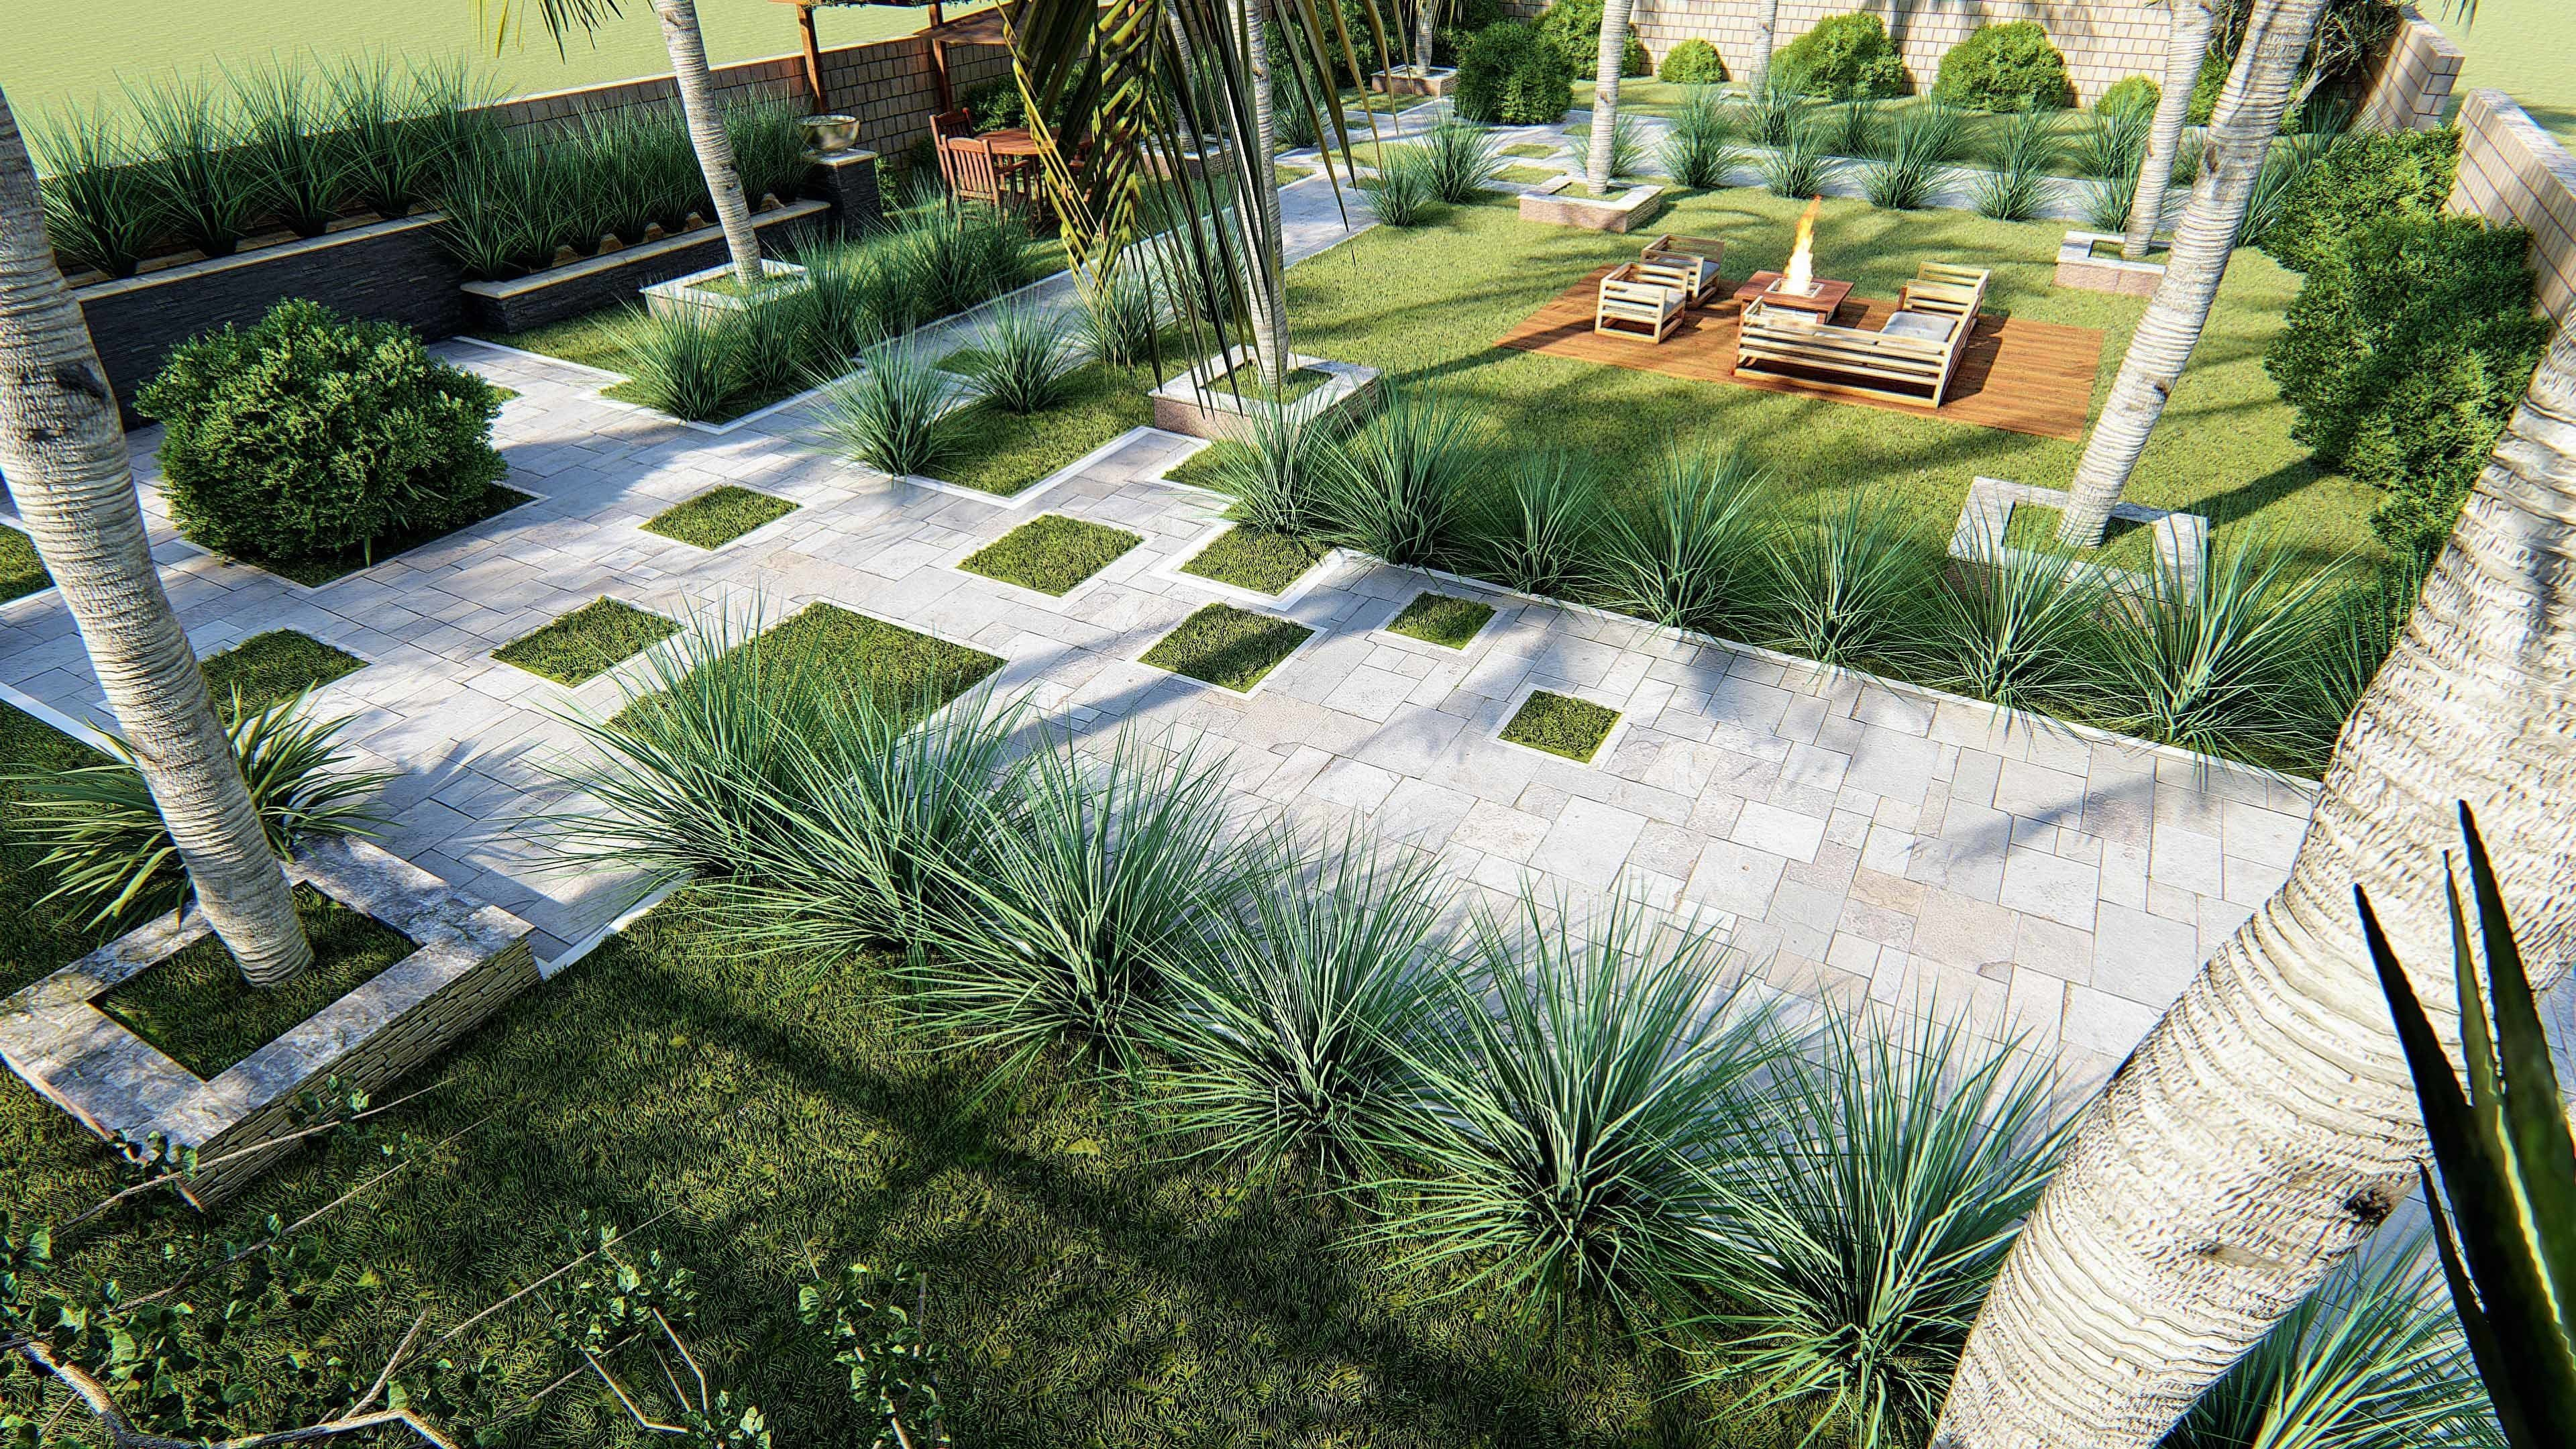 Landscape Design 3d Model And Render In Lumion 3d Model Landscape Architecture Design Landscape Design Landscape Projects